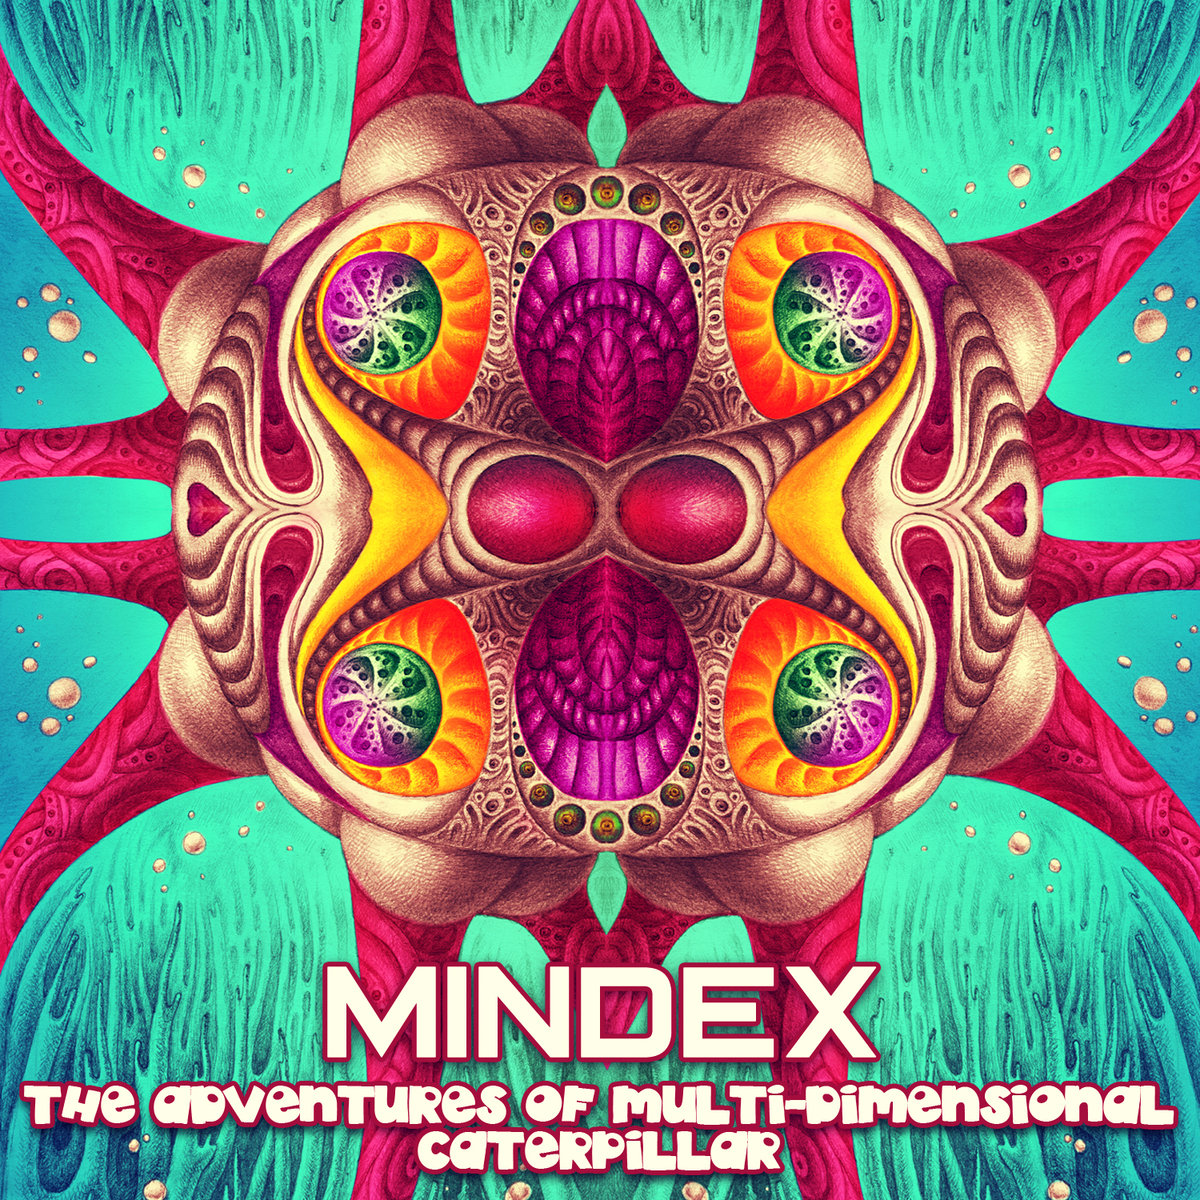 Mindex - The Adventures of Multi-Dimensional Caterpillar